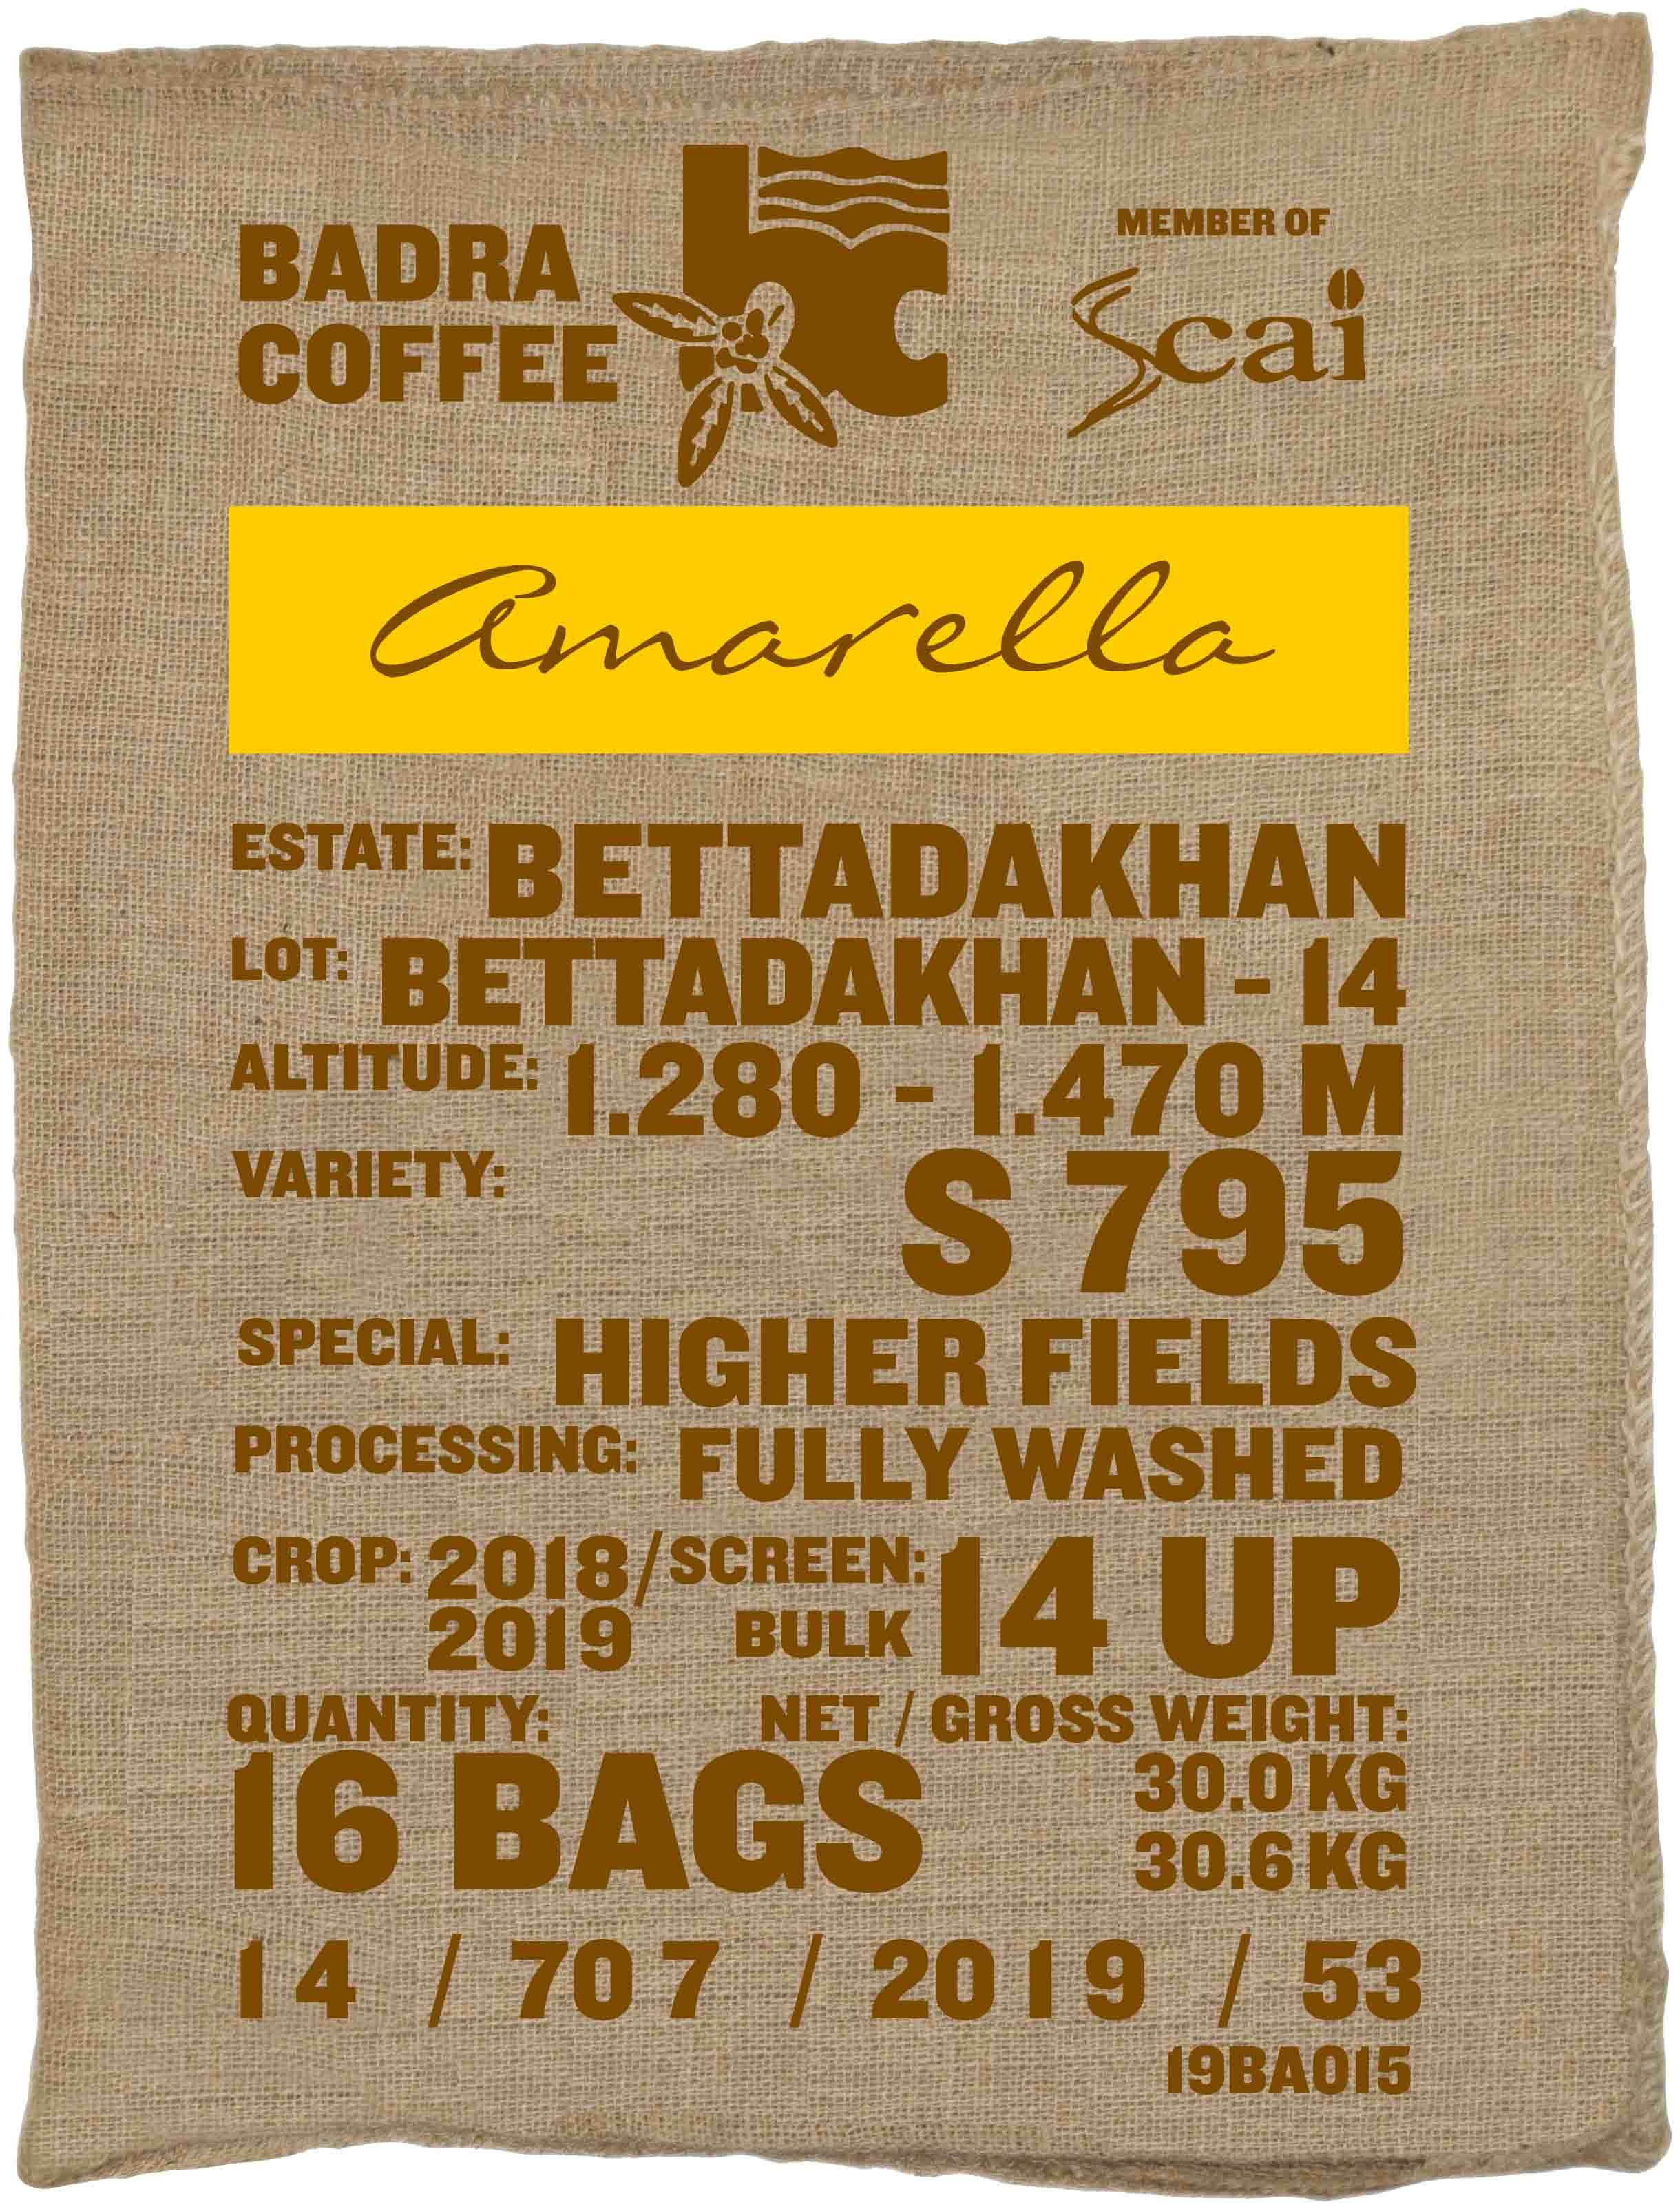 Ein Rohkaffeesack amarella Parzellenkaffee Varietät S795 Higher Fields. Badra Estates Lot Bettadakhan 14.